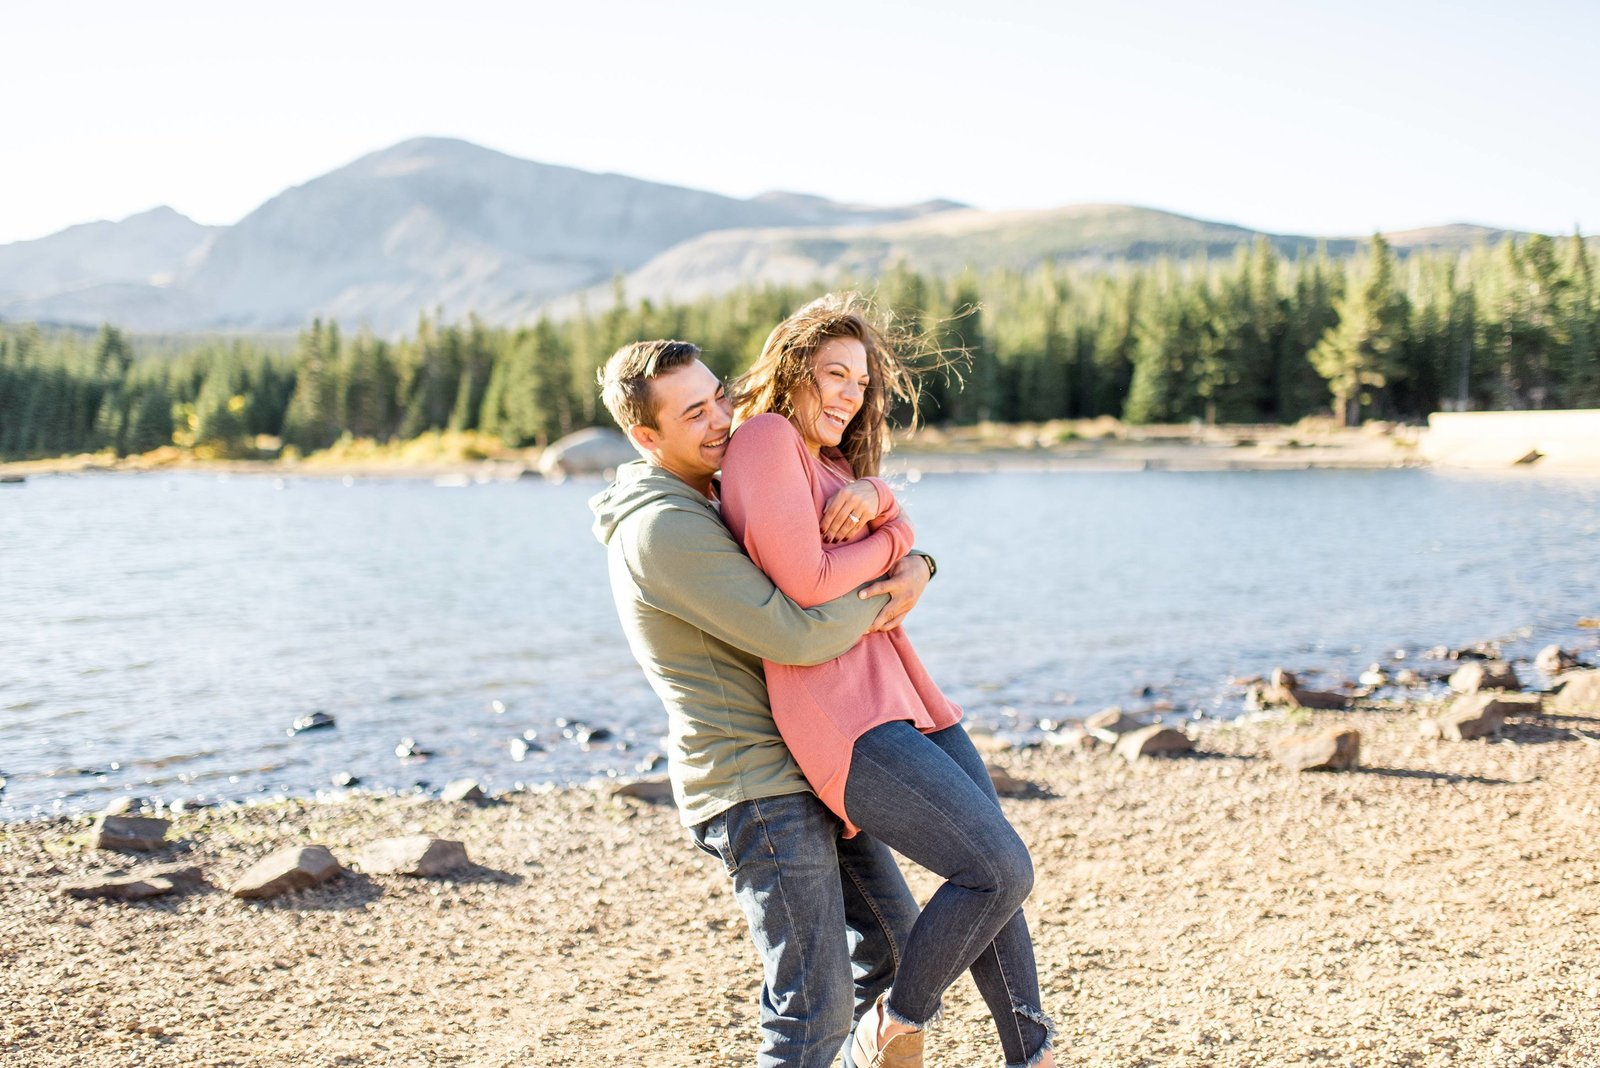 engagement portrait photographer near estes park colorado